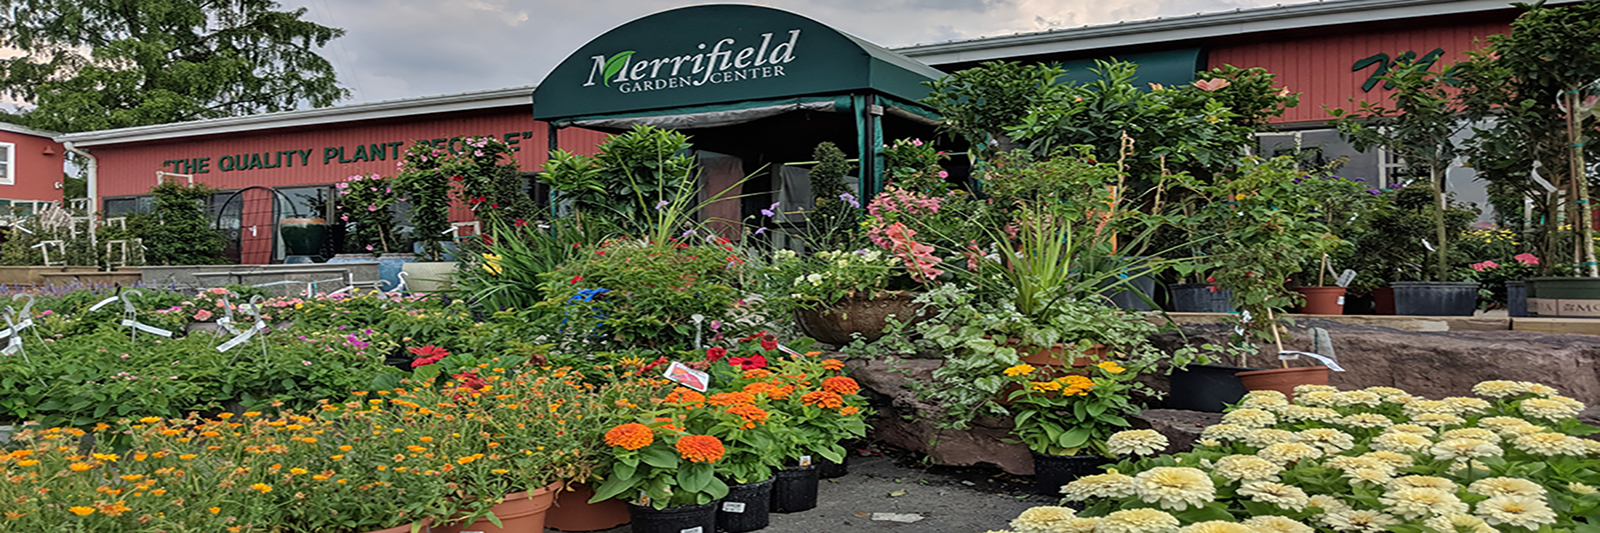 merrifiedl-garden-center-june-10.jpg